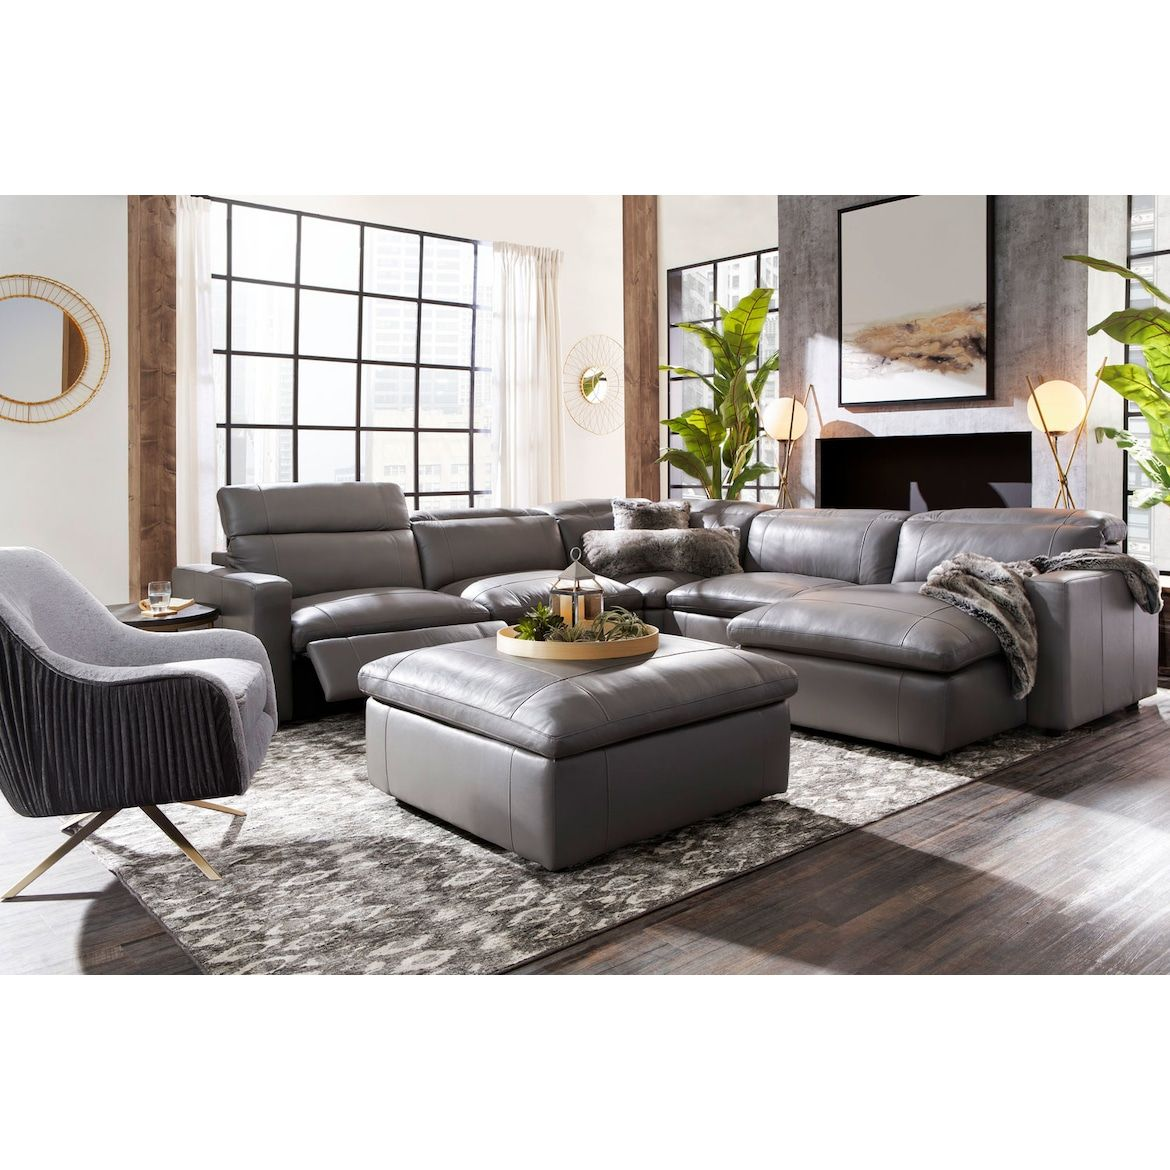 Happy 5 Piece Dual Power Reclining Sectional With Chaise And 3 Reclining Seats American Signatu Reclining Sectional Furniture Reclining Sectional With Chaise